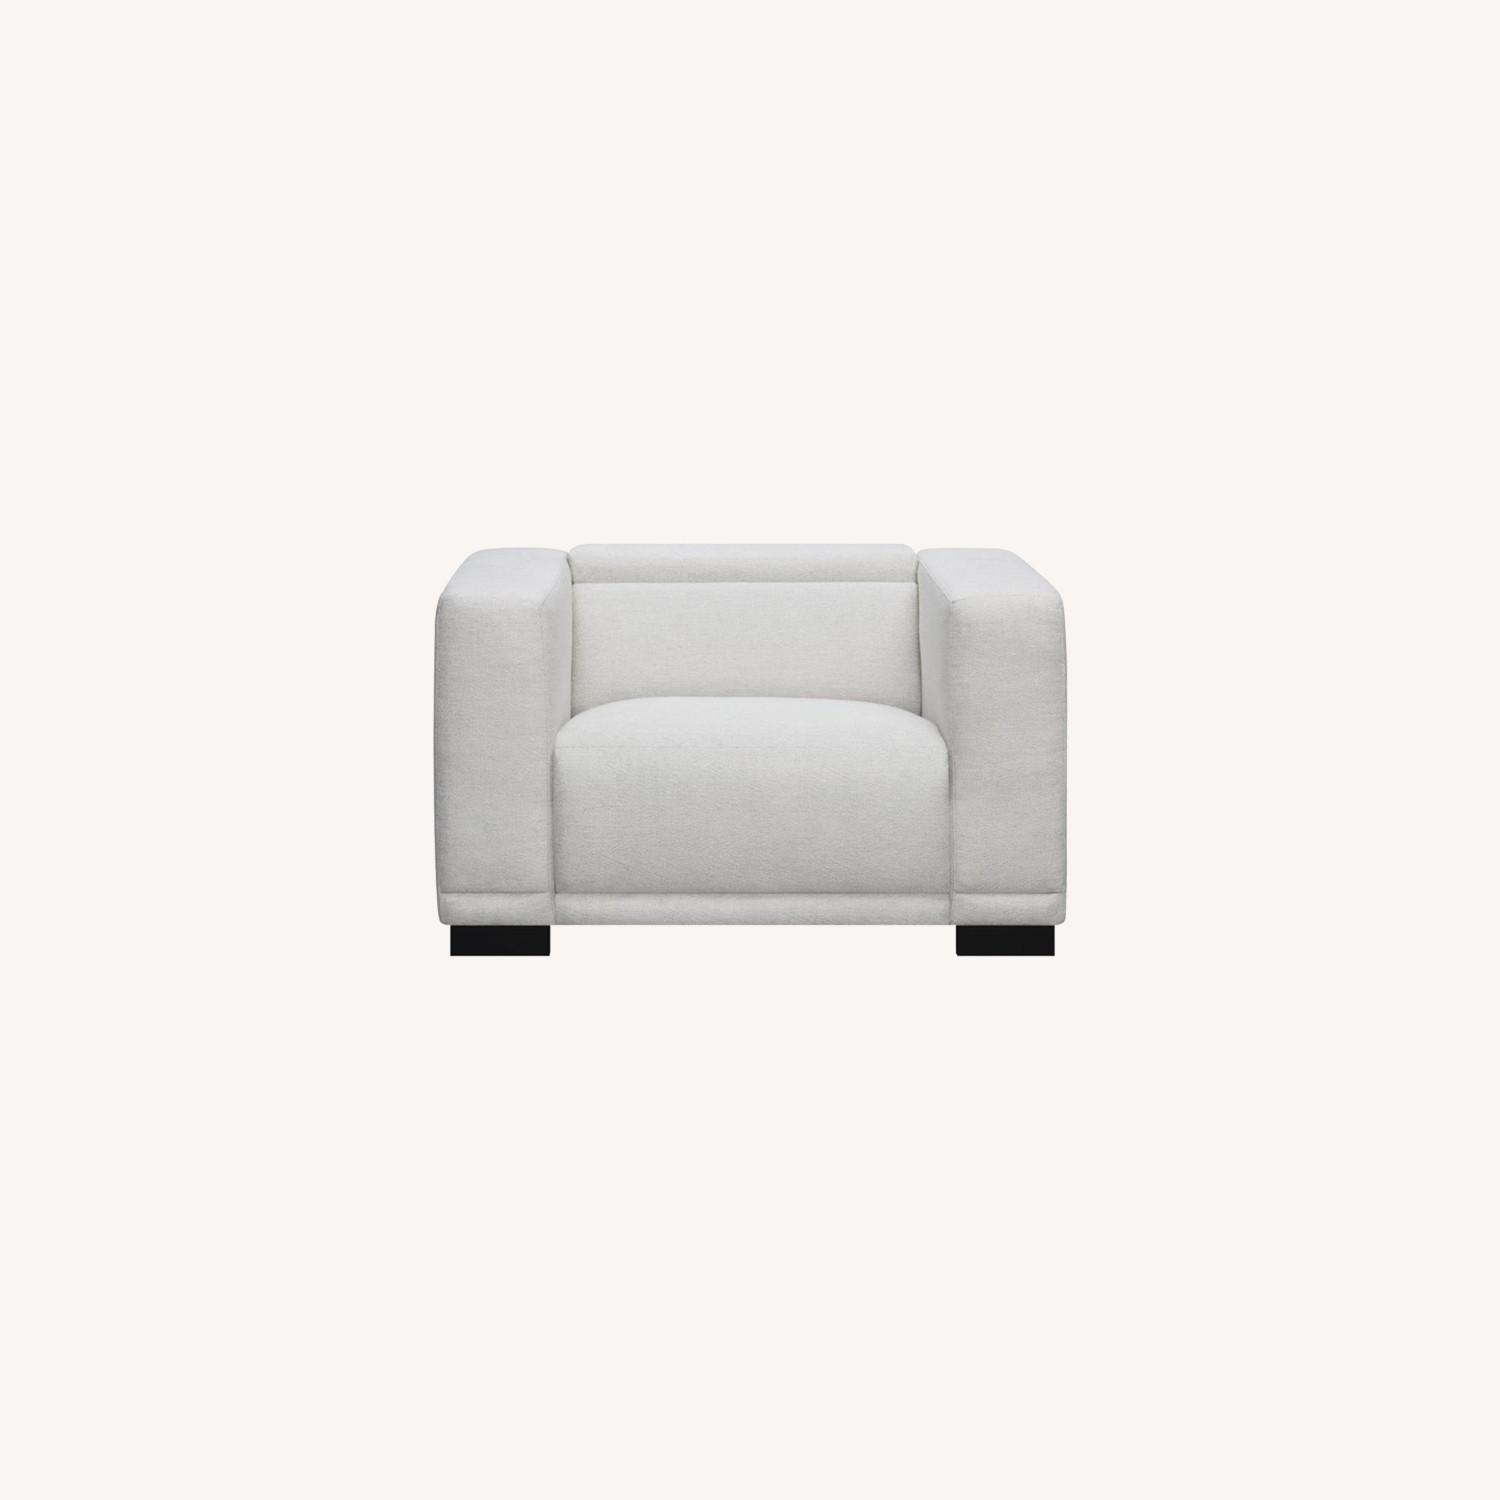 Power Recliner In Beige Chenille Fabric - image-9